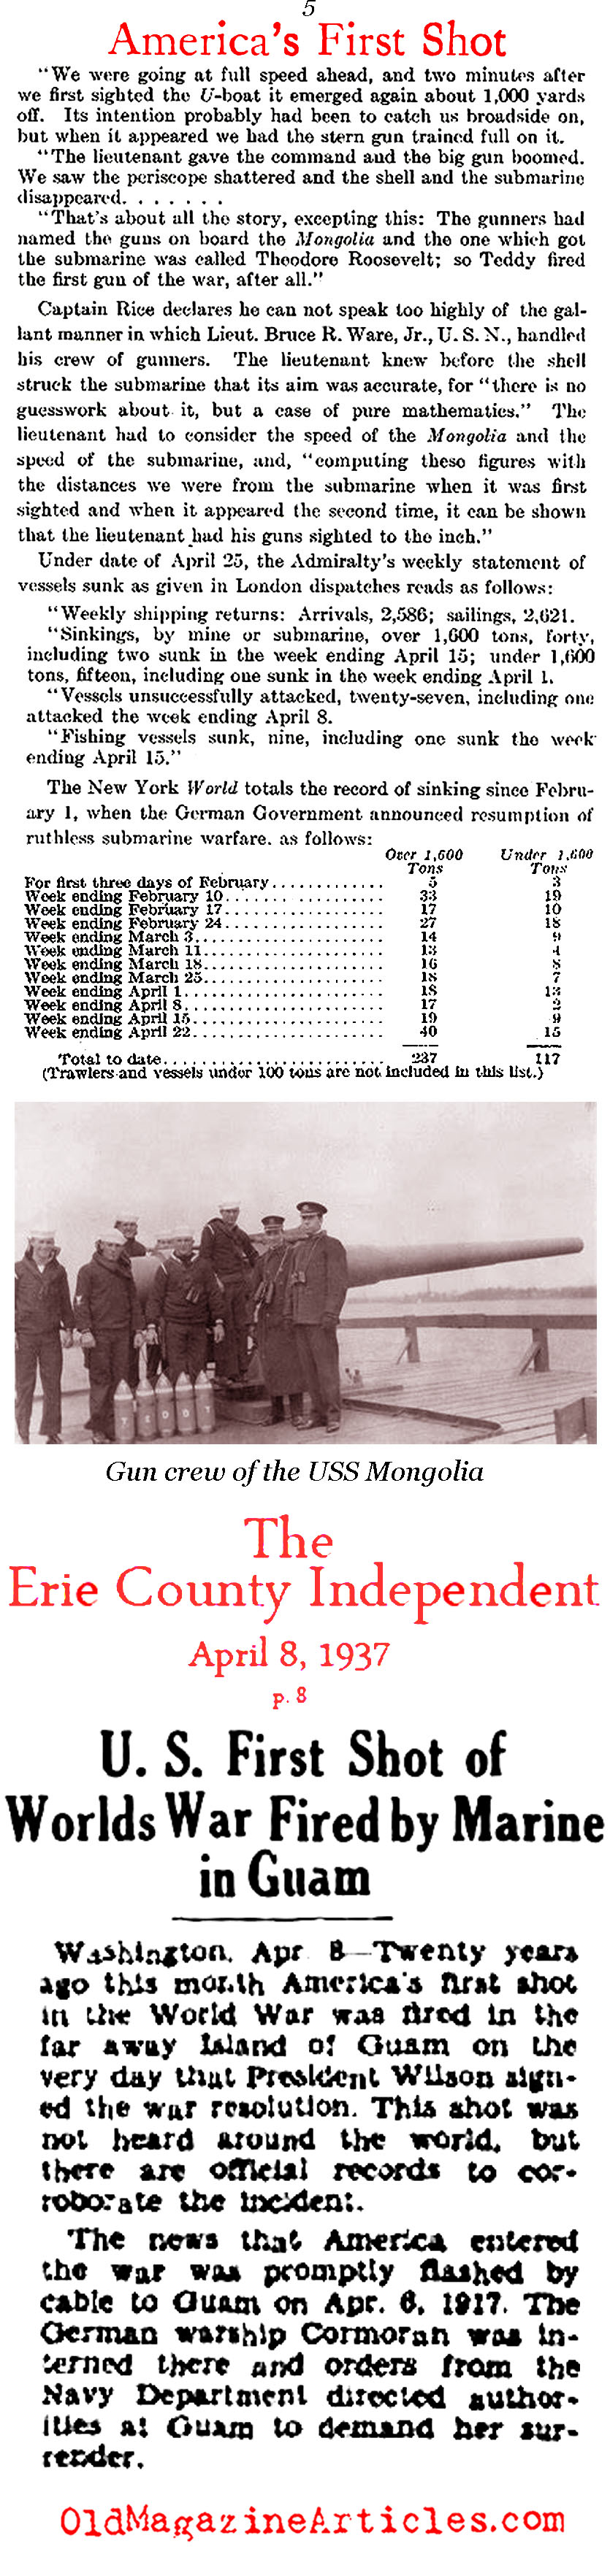 America's First Shot (Various Sources, 1917 - 1937)